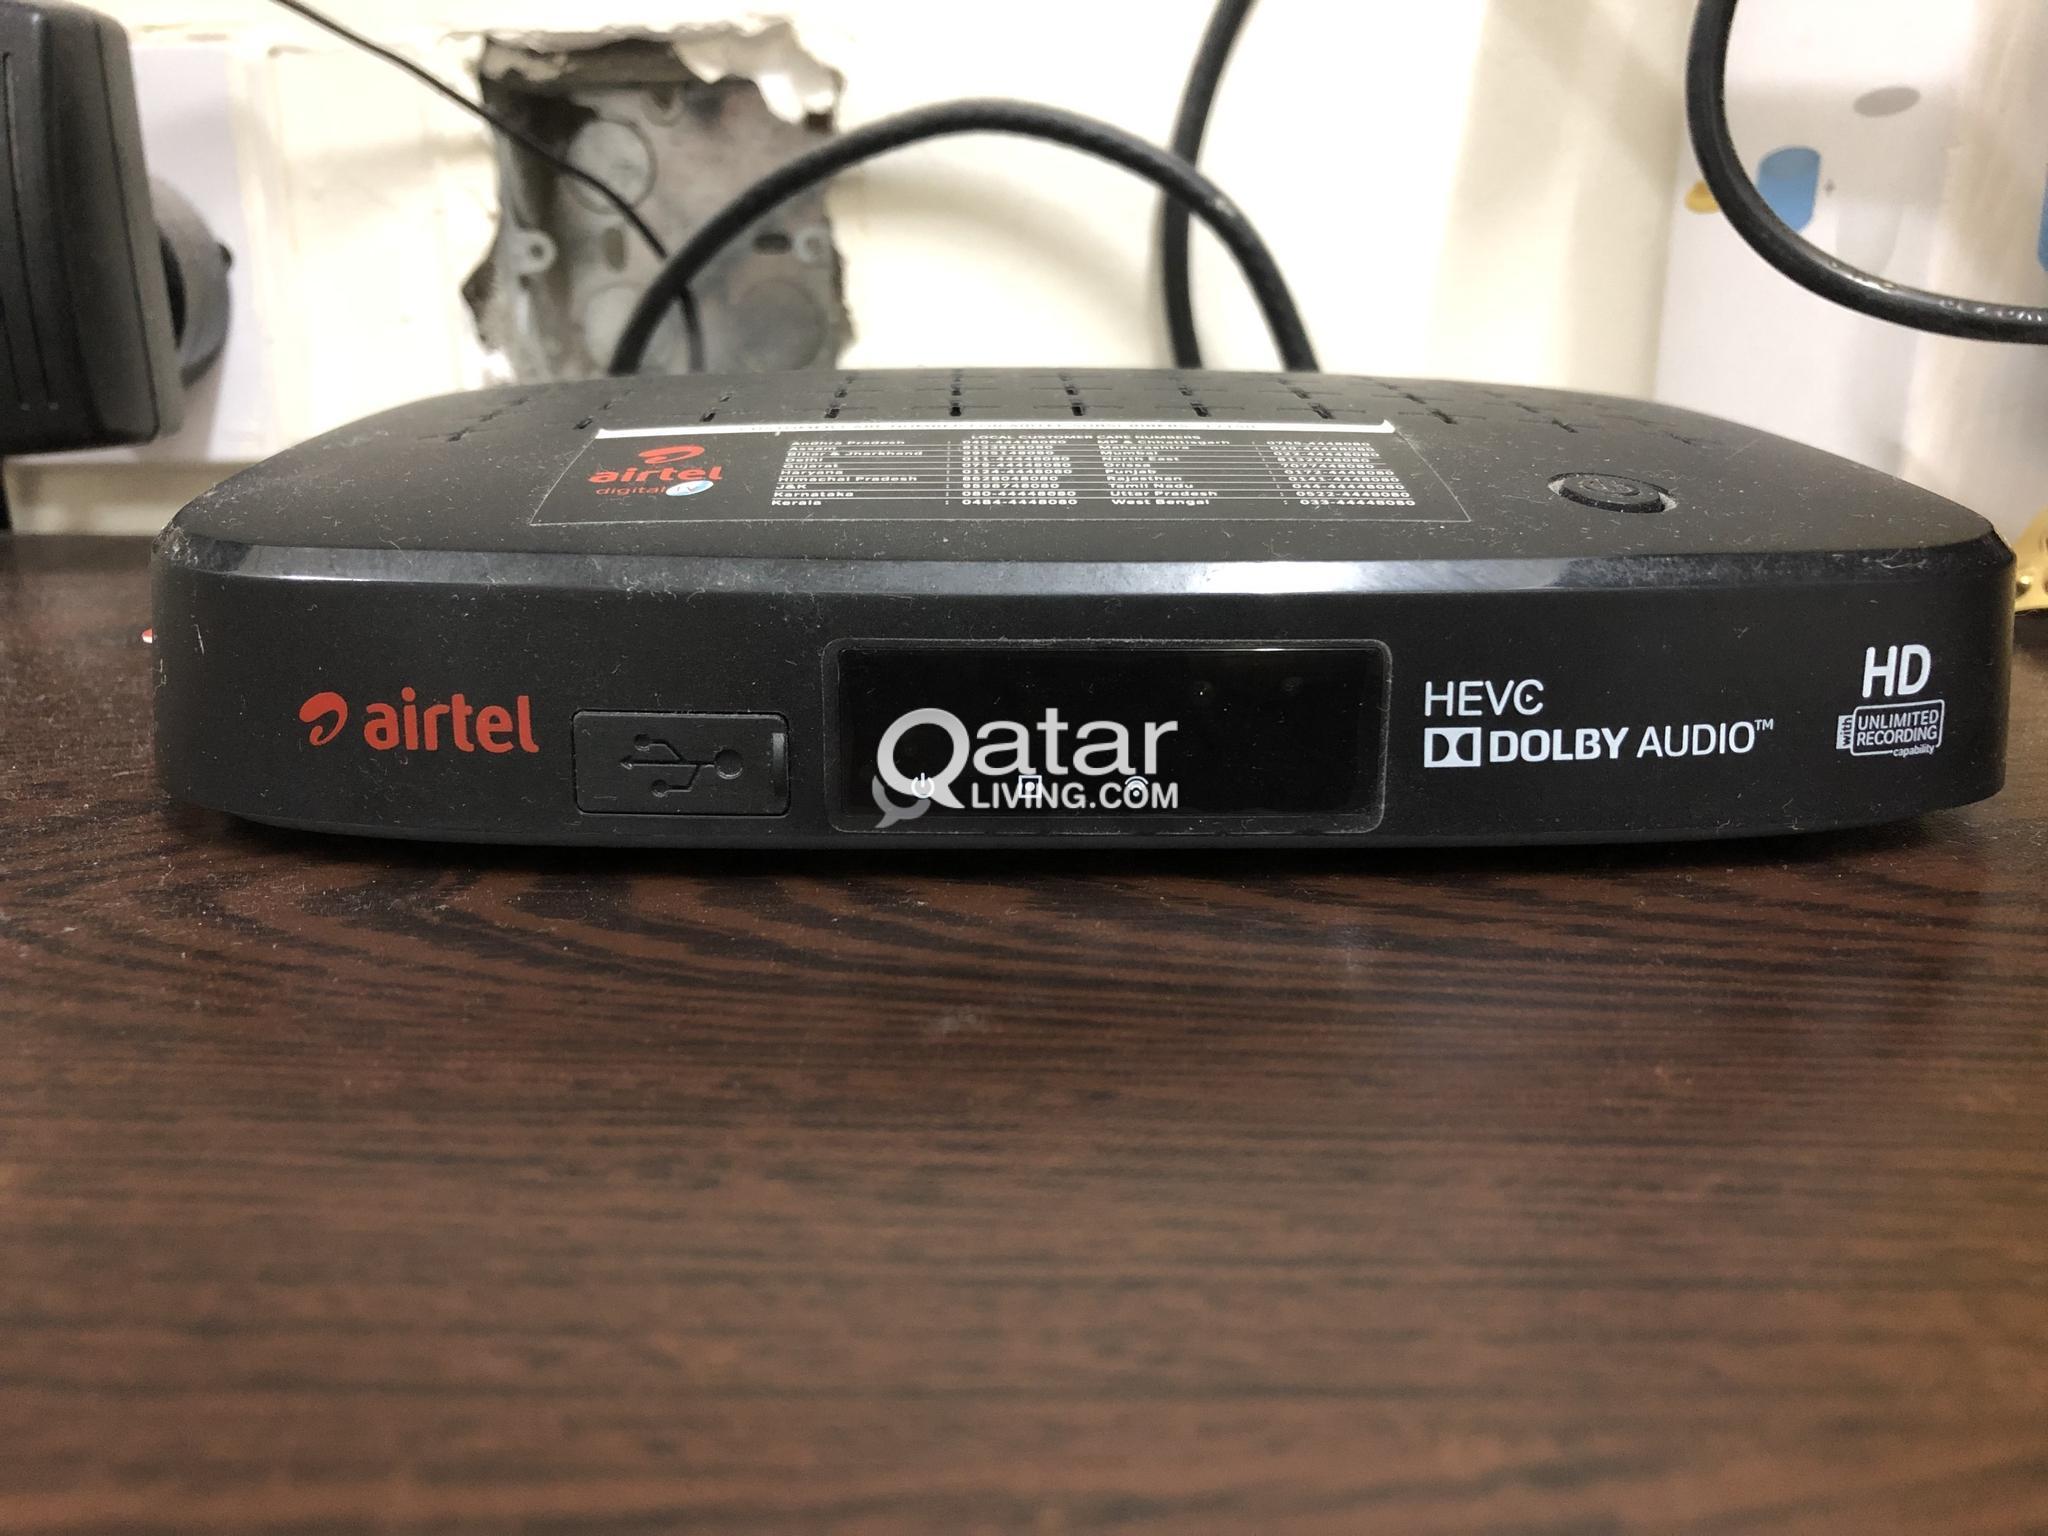 Airtel DTH settop box/receiver For sale | Qatar Living